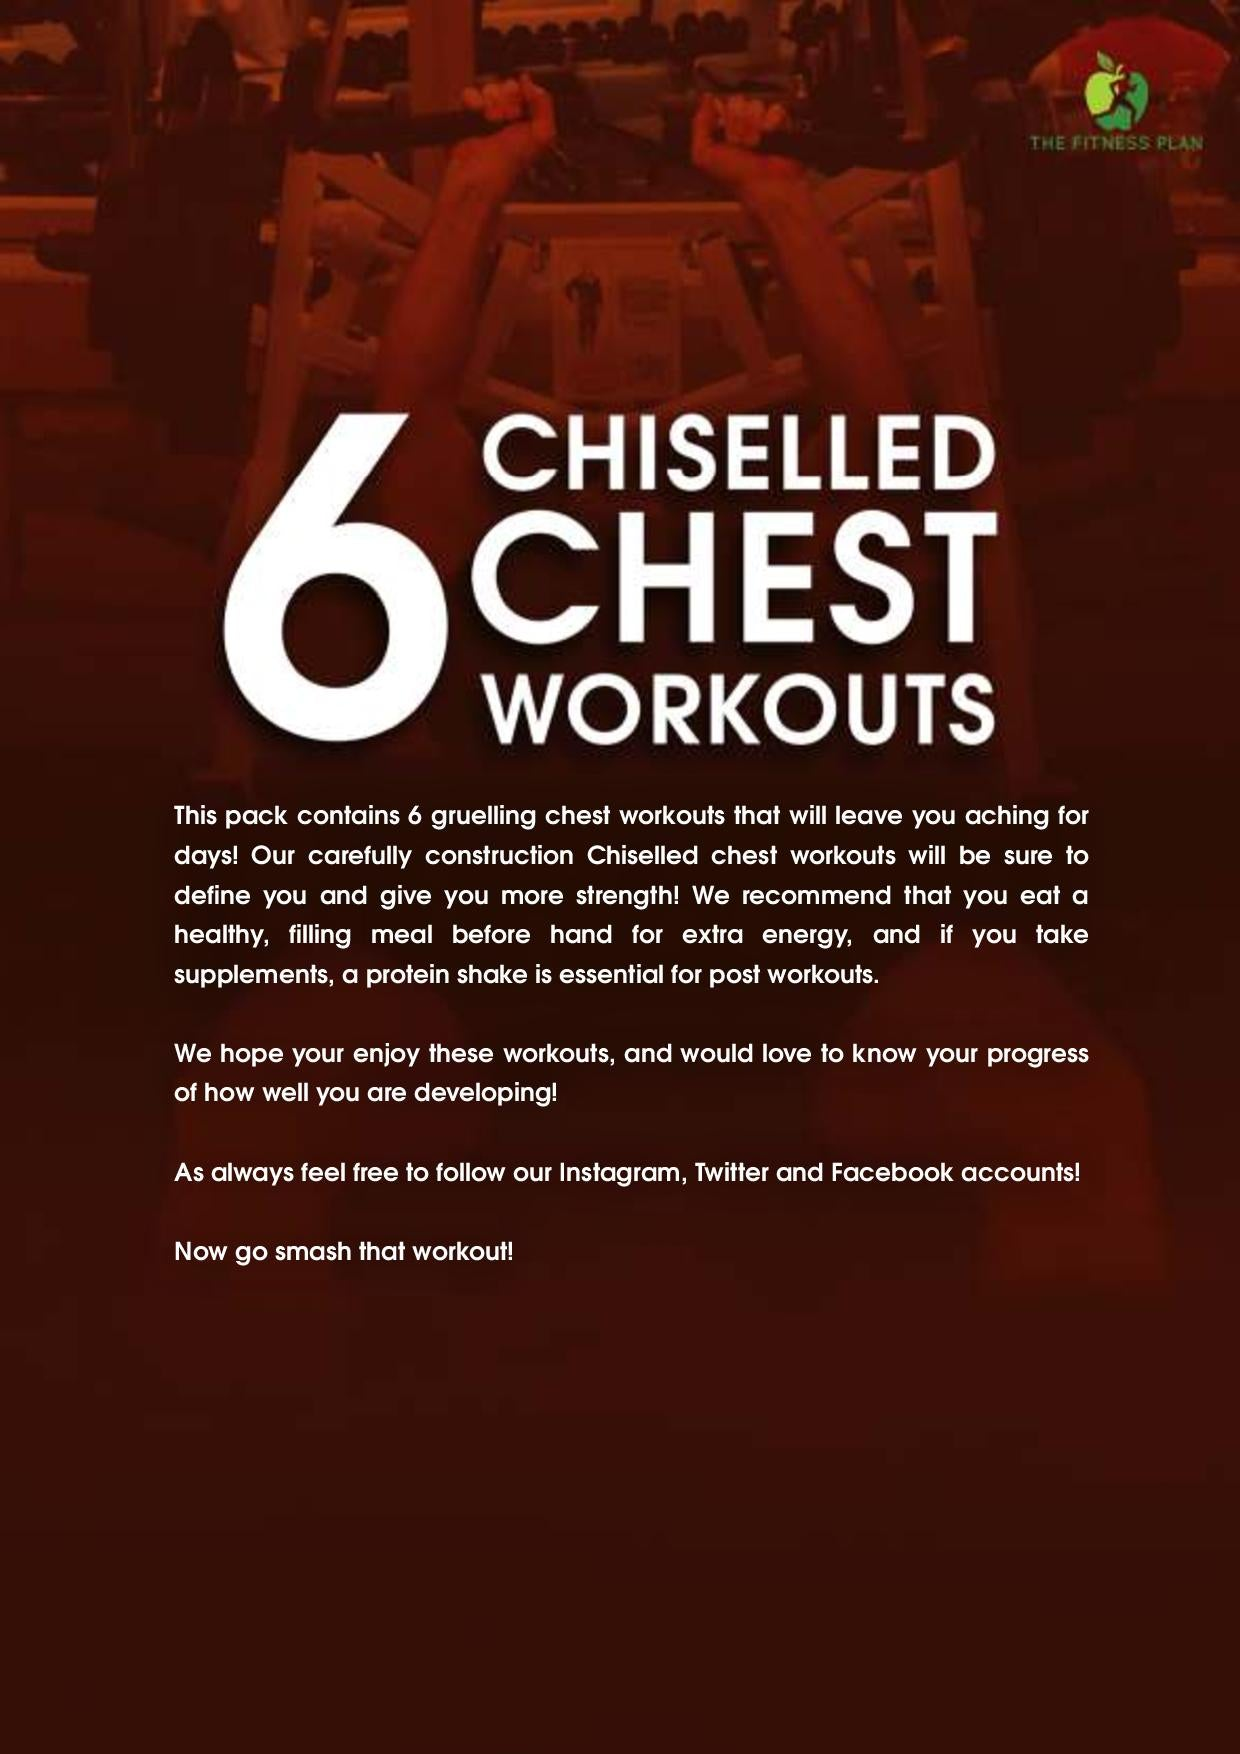 6 Chiselled Chest Workouts